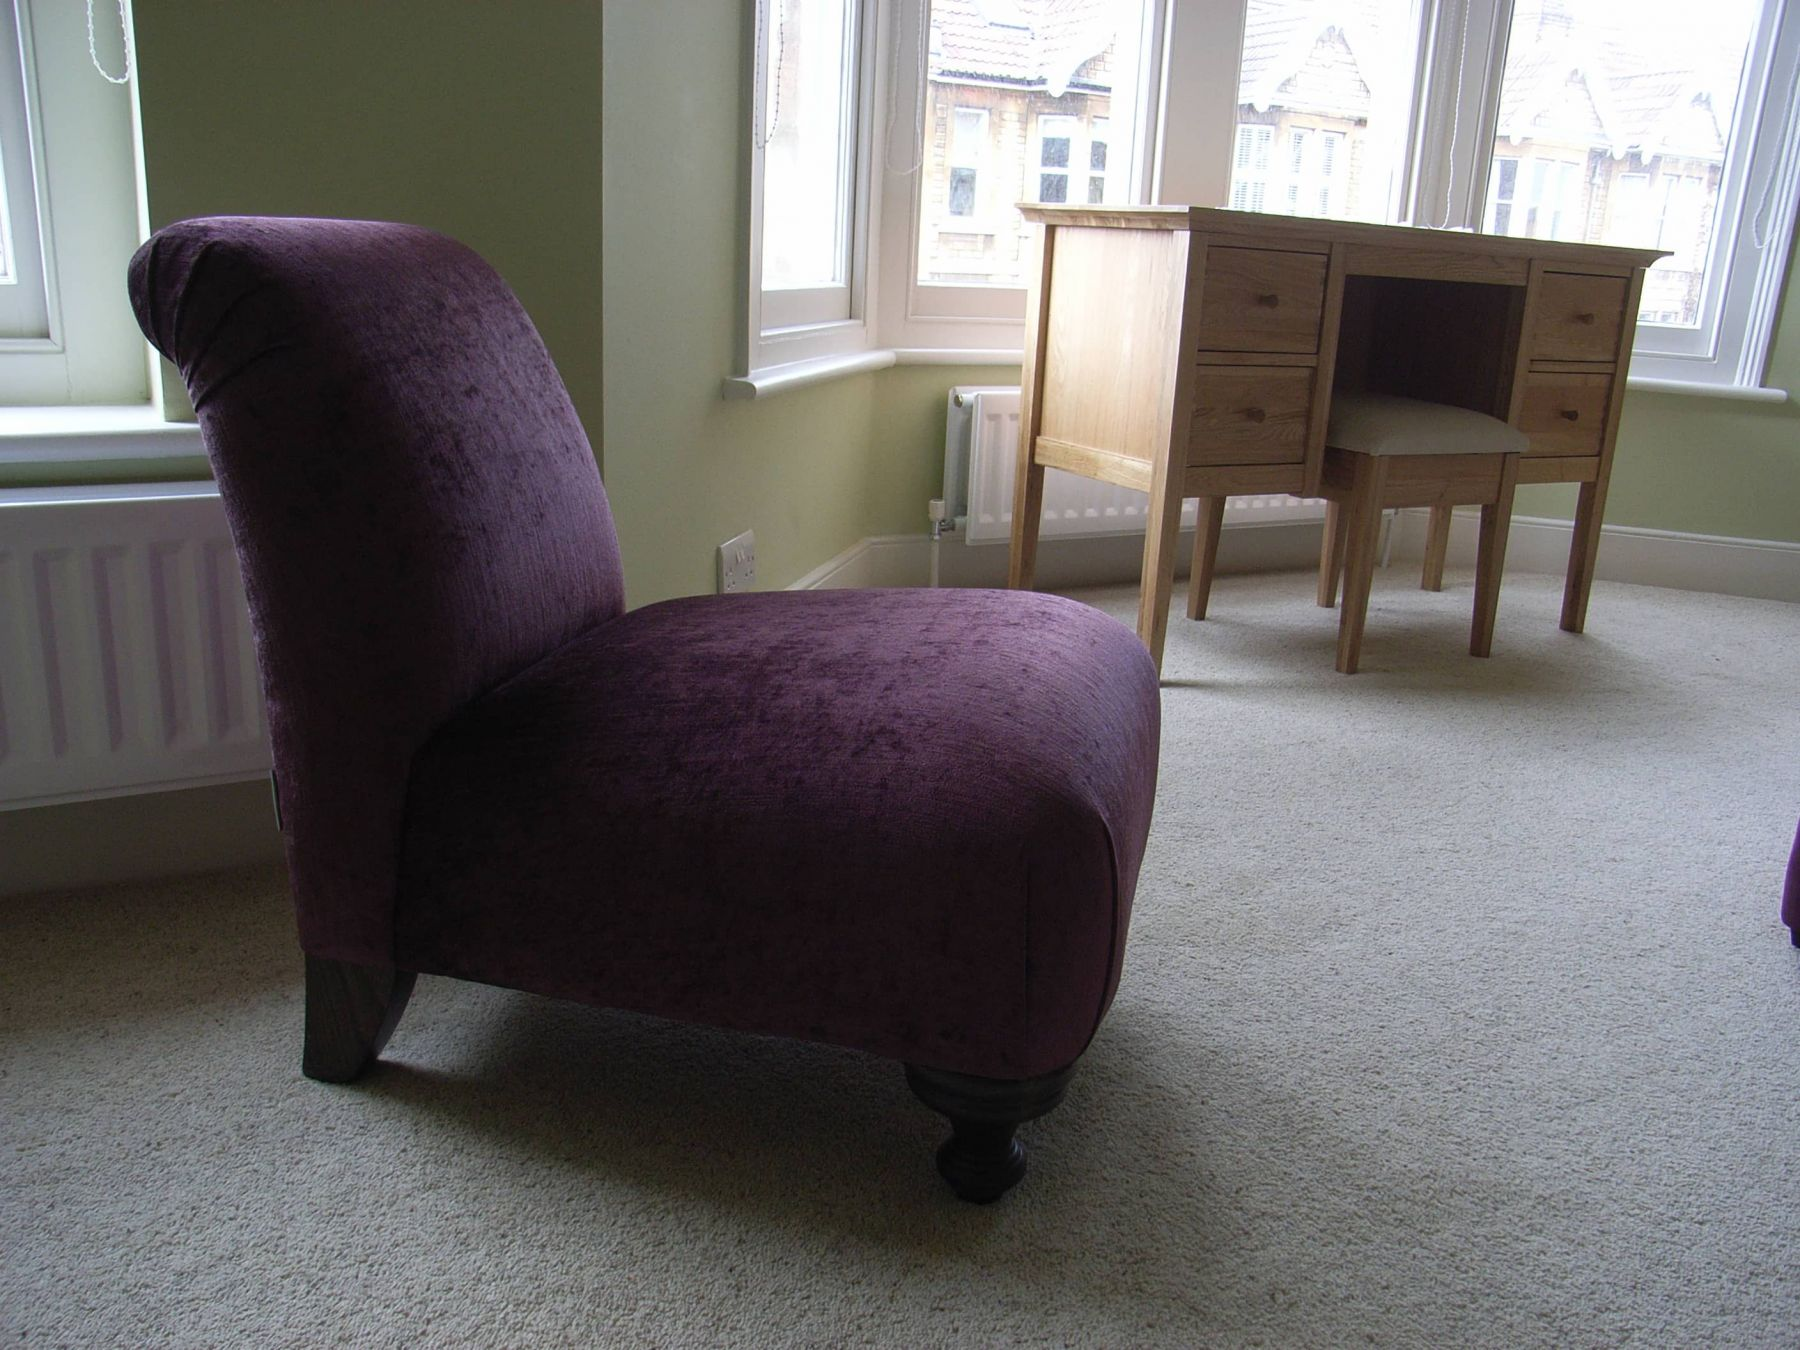 Bedrooms - Purple chairs for bedroom ...